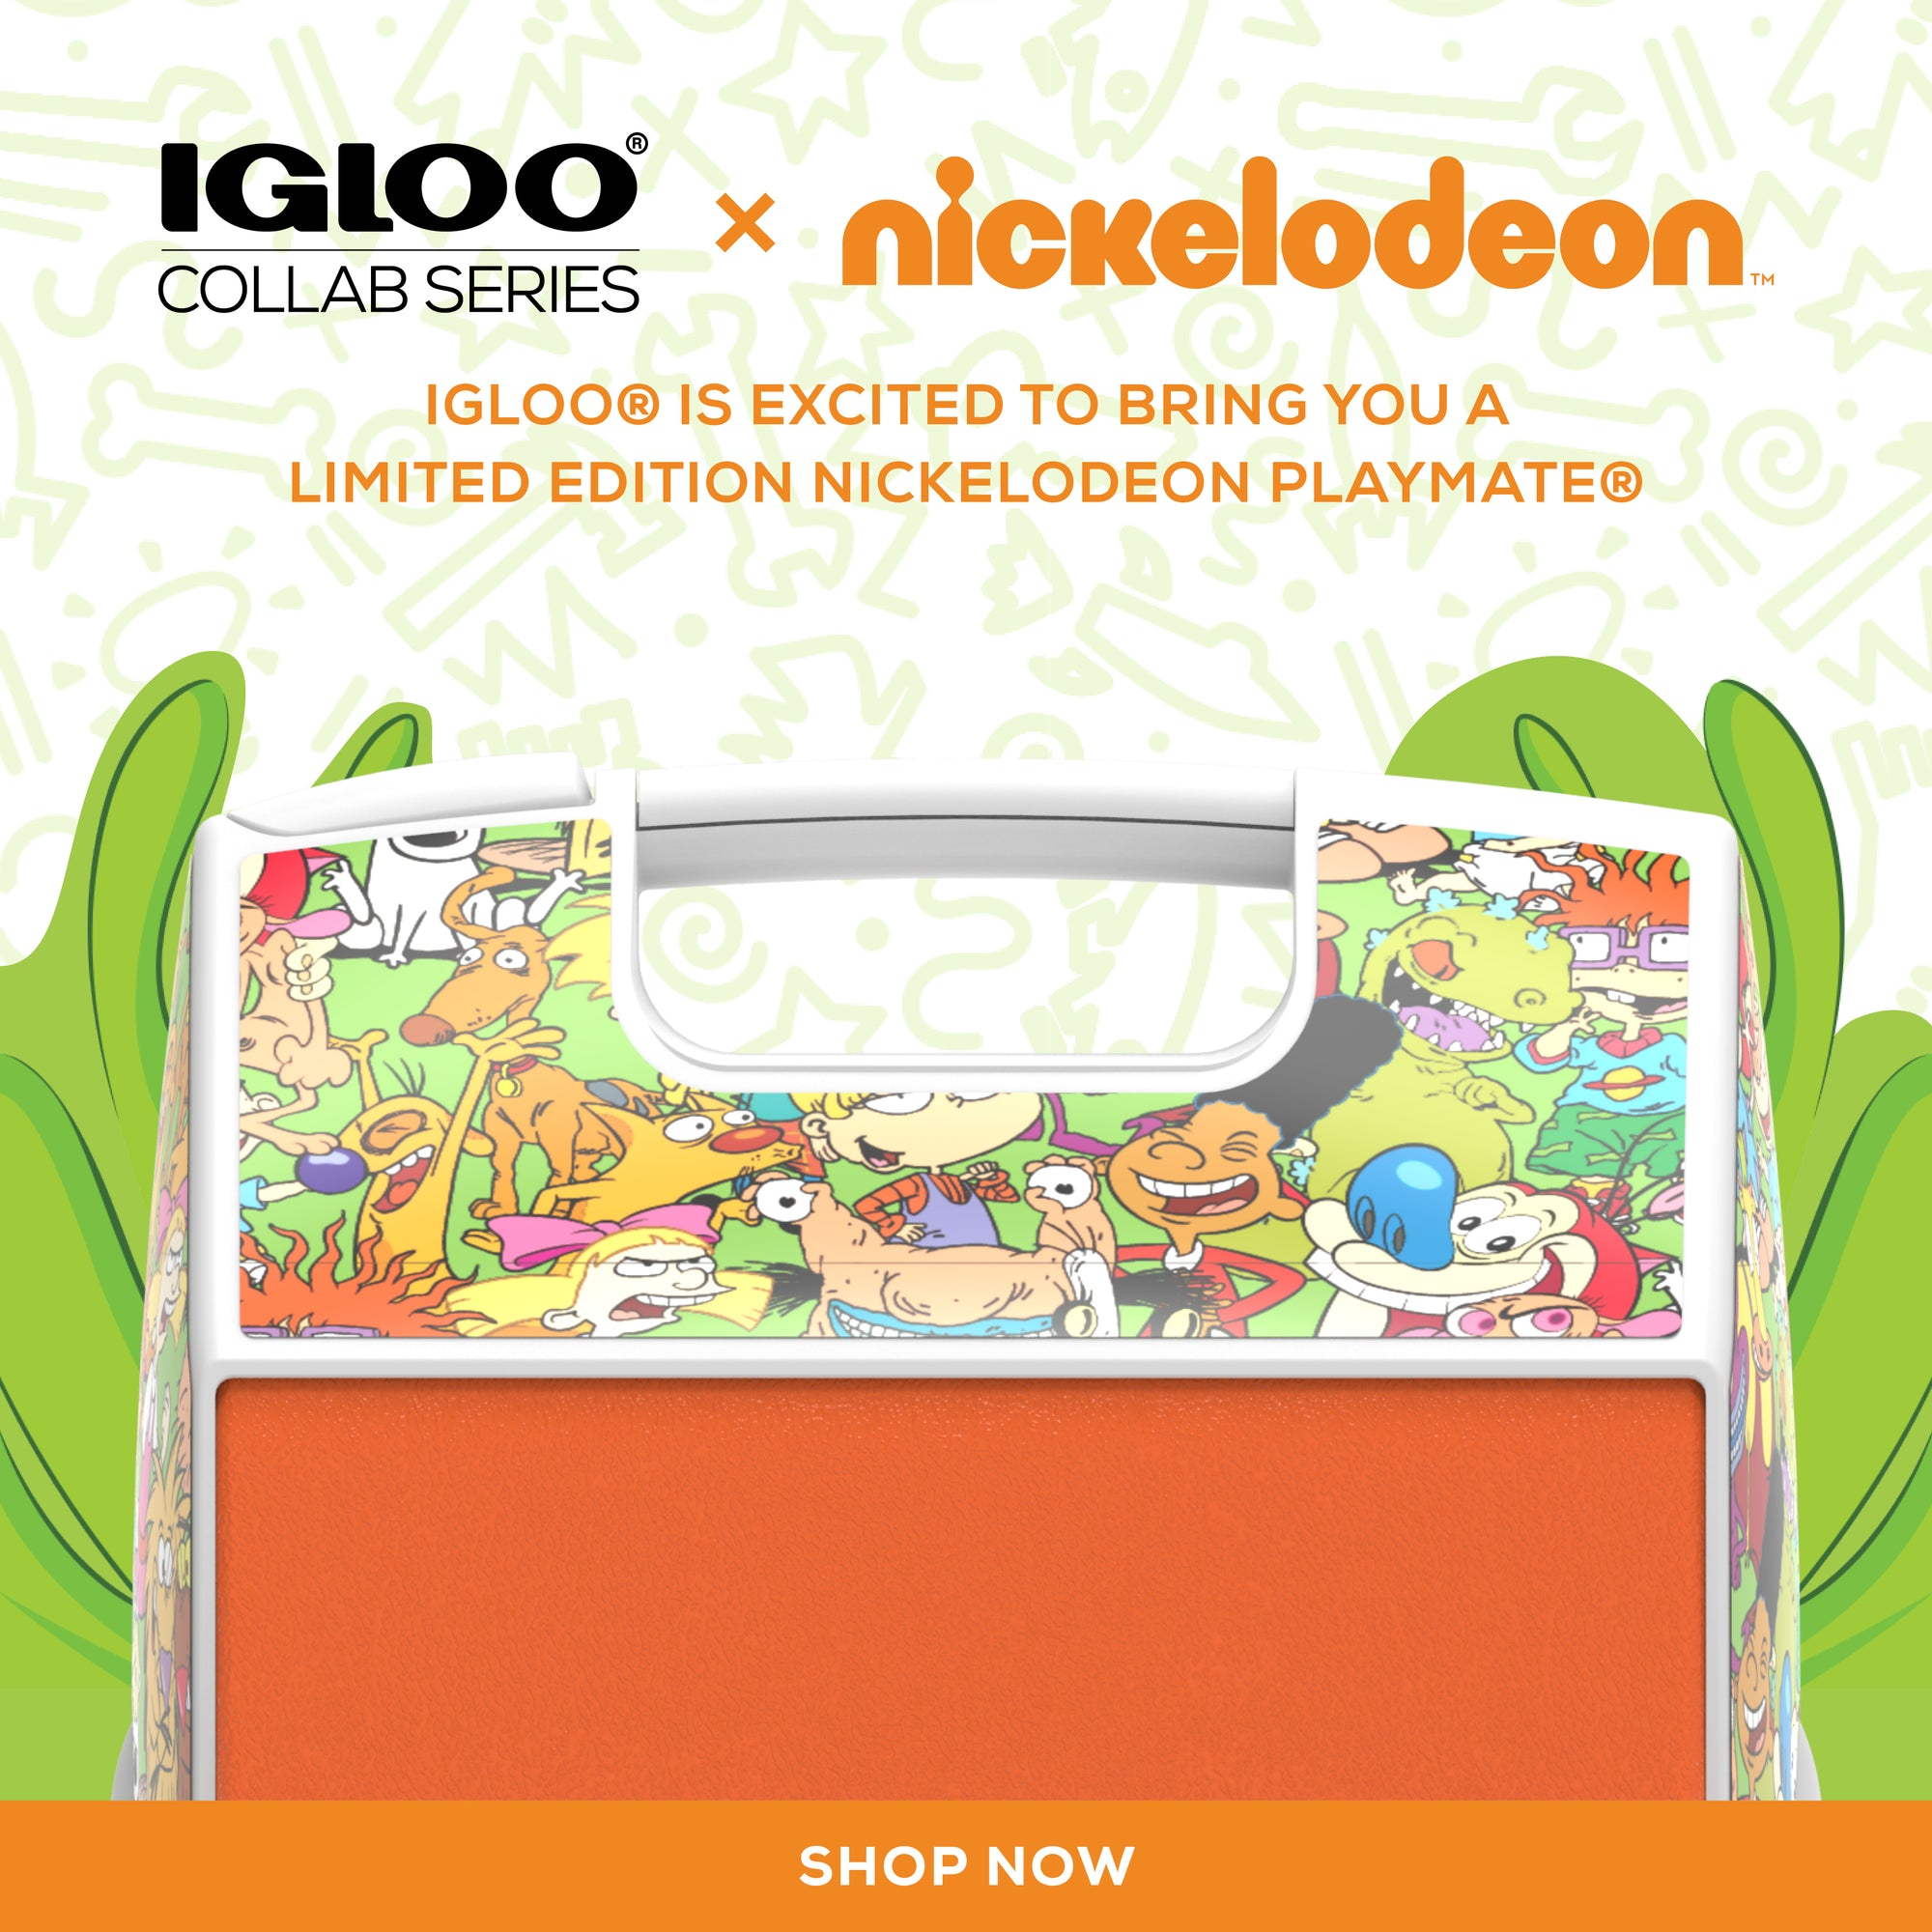 Nickelodeon Playmate Cooler